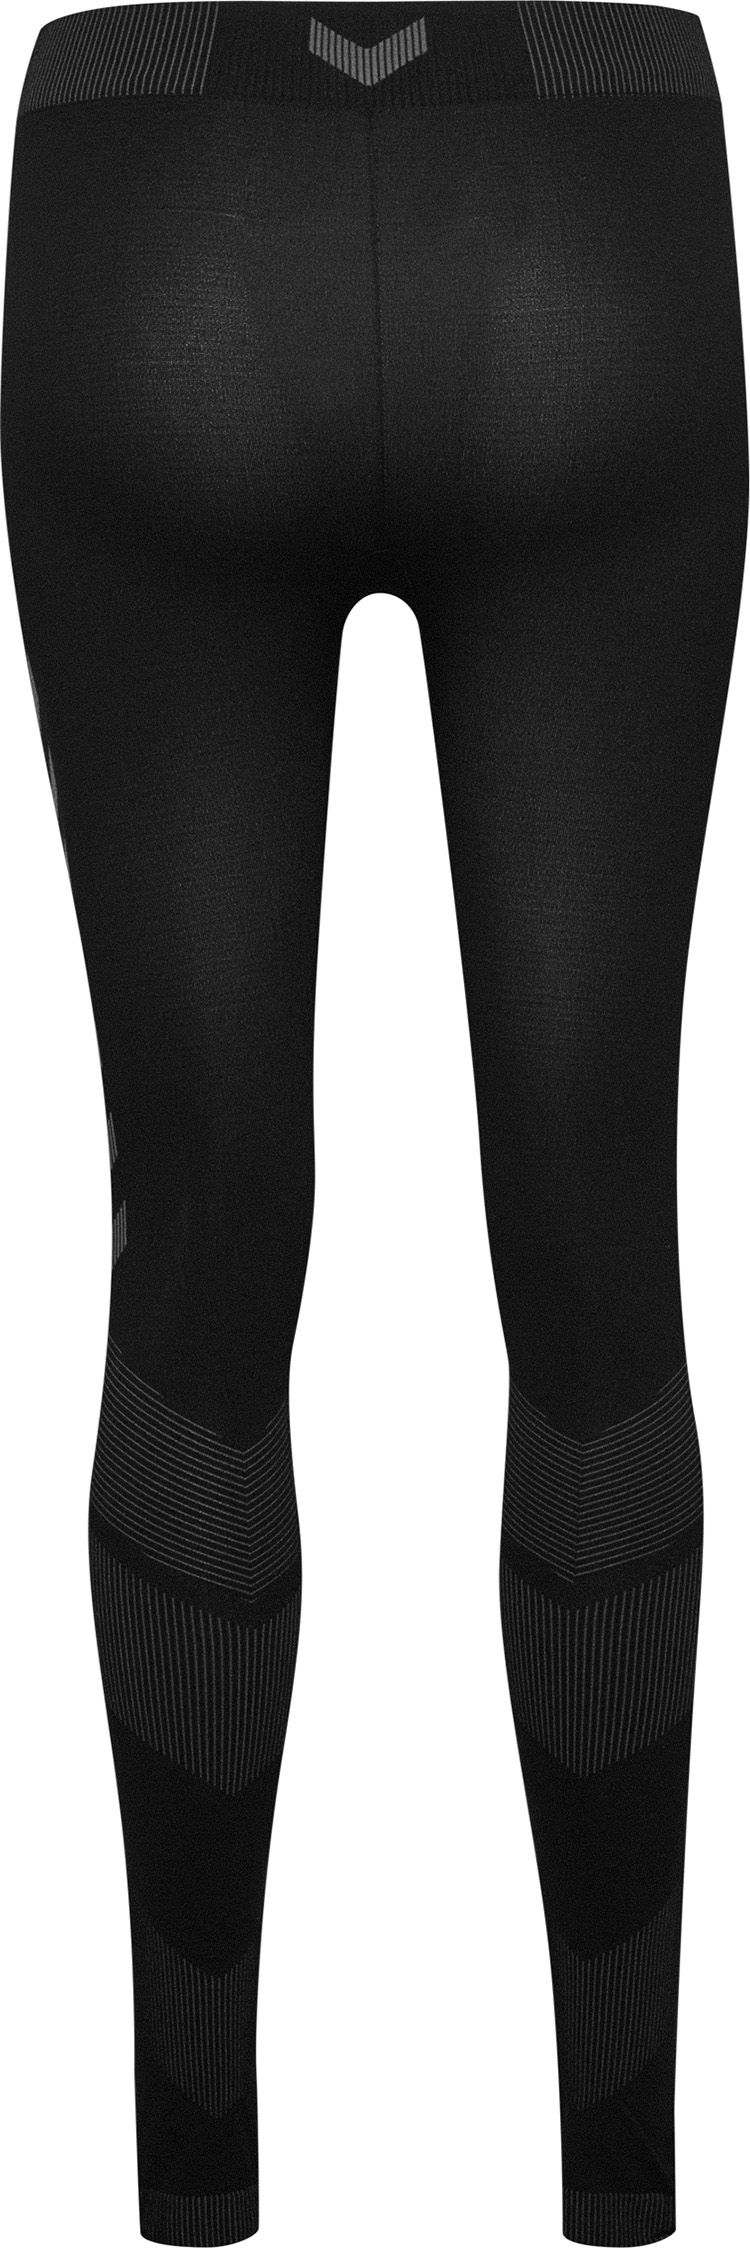 Tights Kompression Hummel Seamless Damen